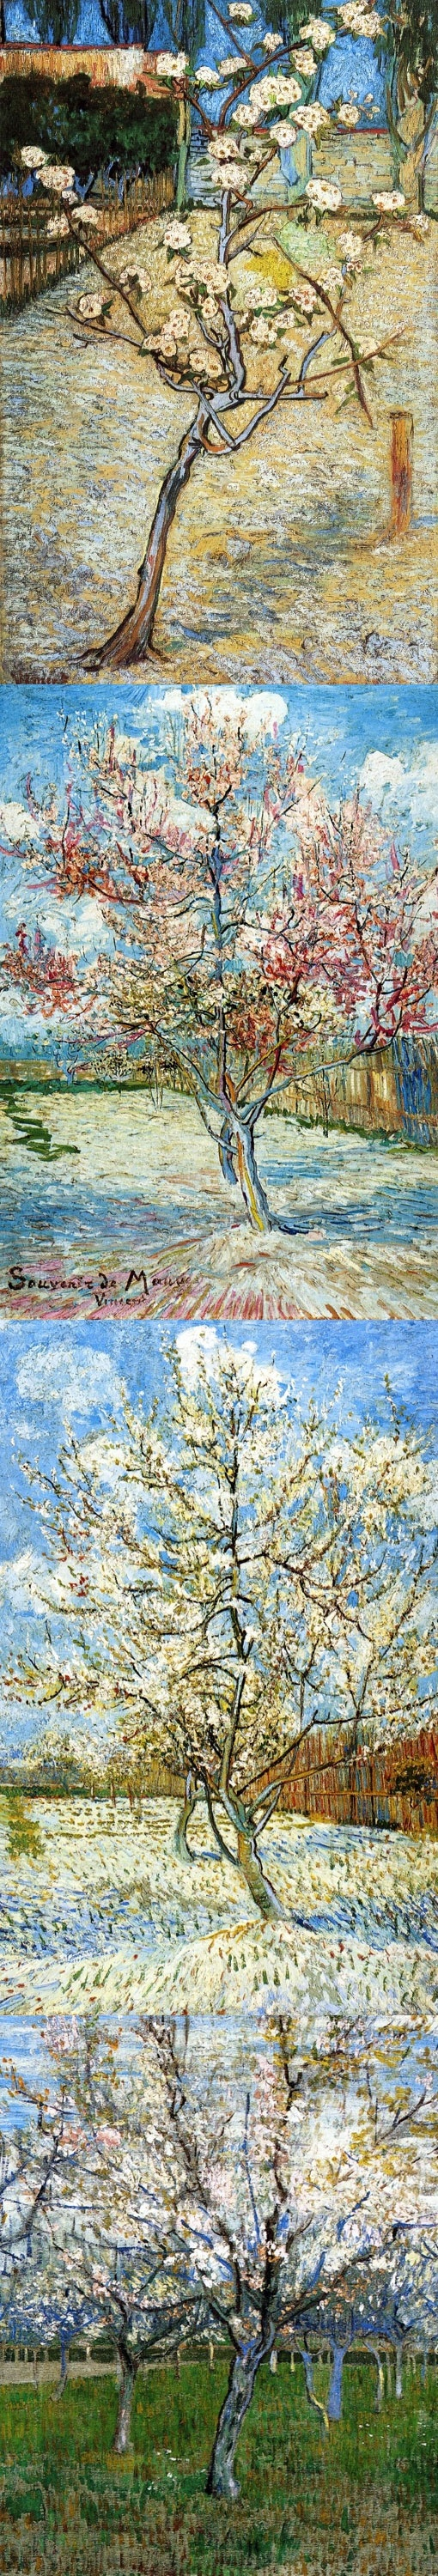 van Gogh - The Cherry Blossom paintings